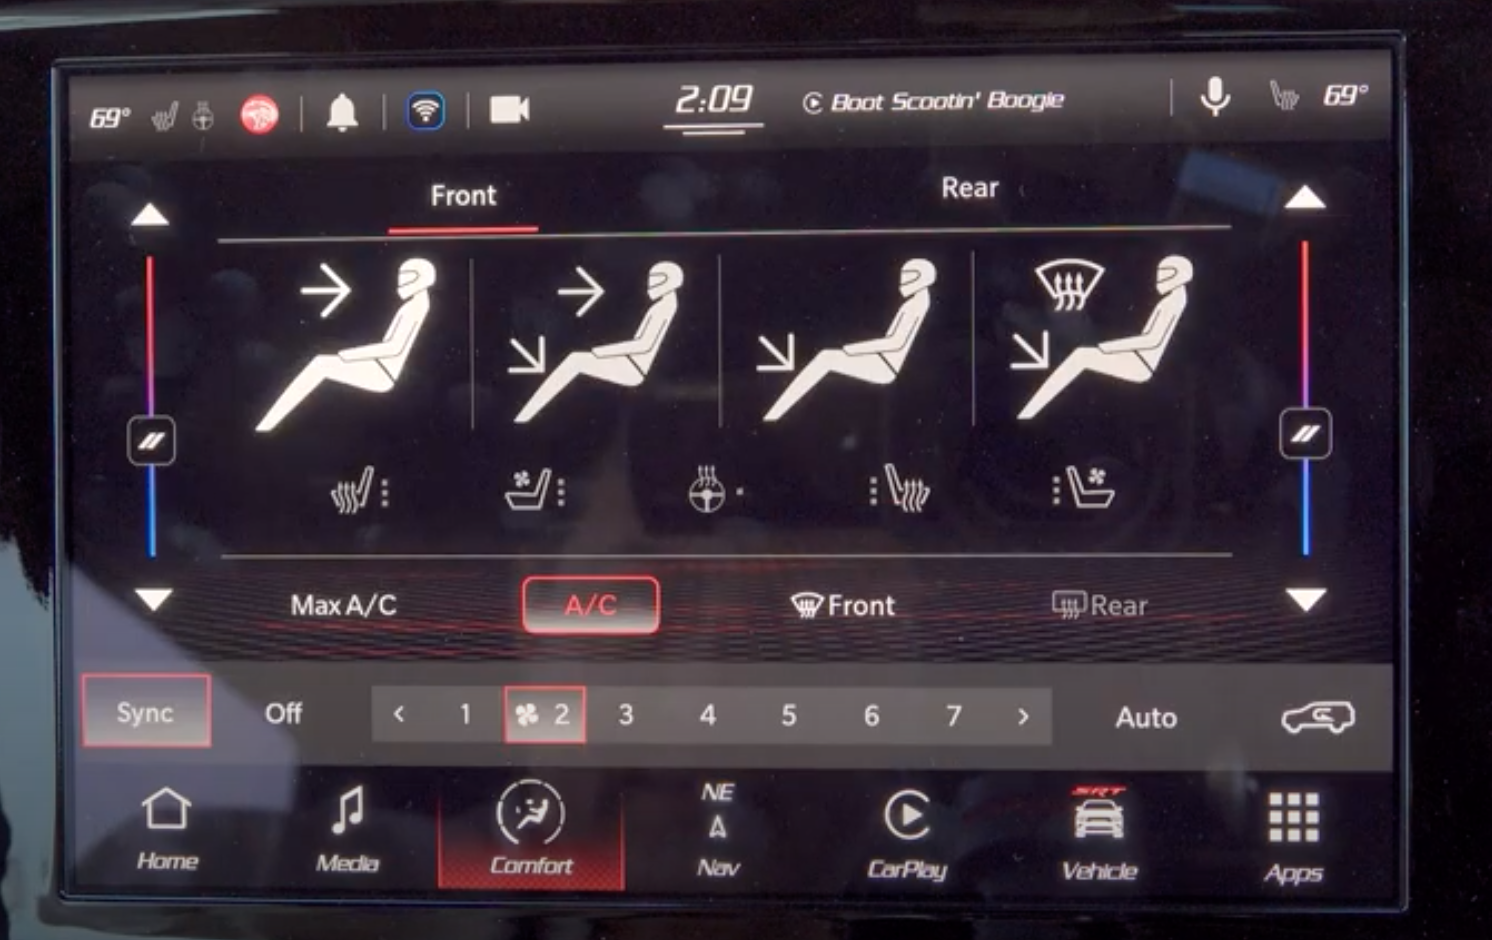 Adjusting the climate settings and air flow with digital buttons